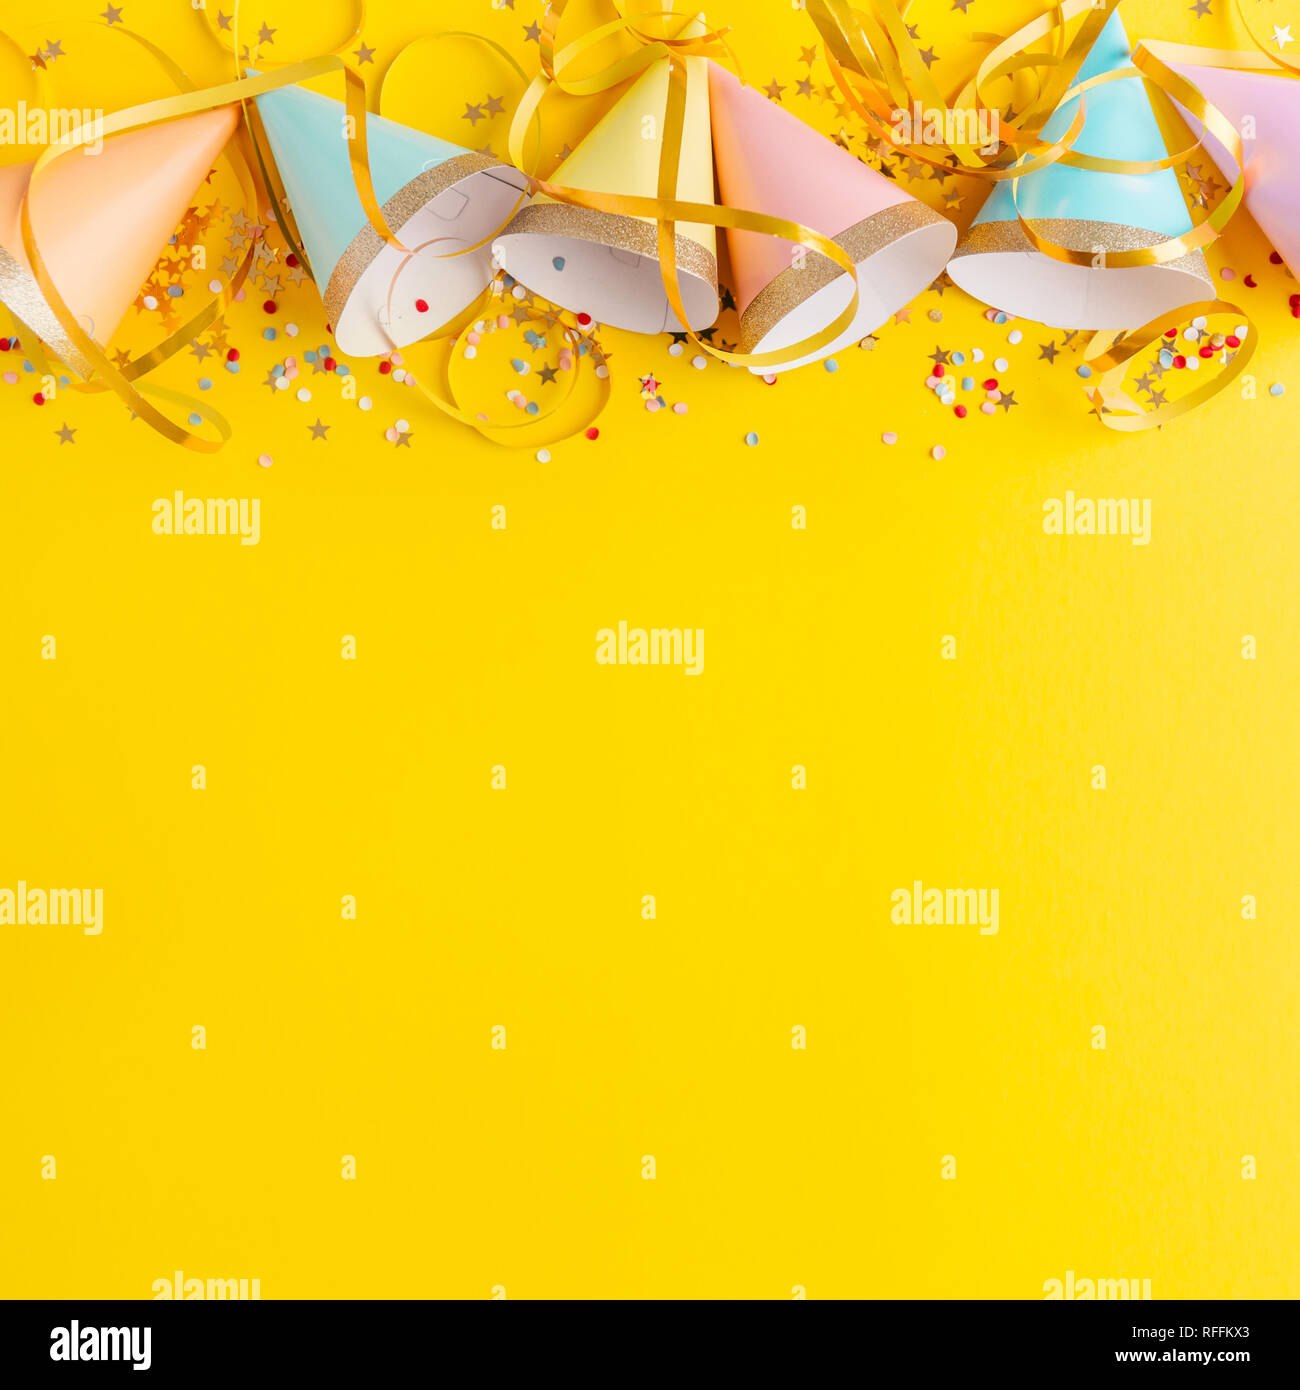 Colorful Happy Birthday Or Party Background Flat Lay Wtih Hats Confetti And Ribbons On Yellow Square